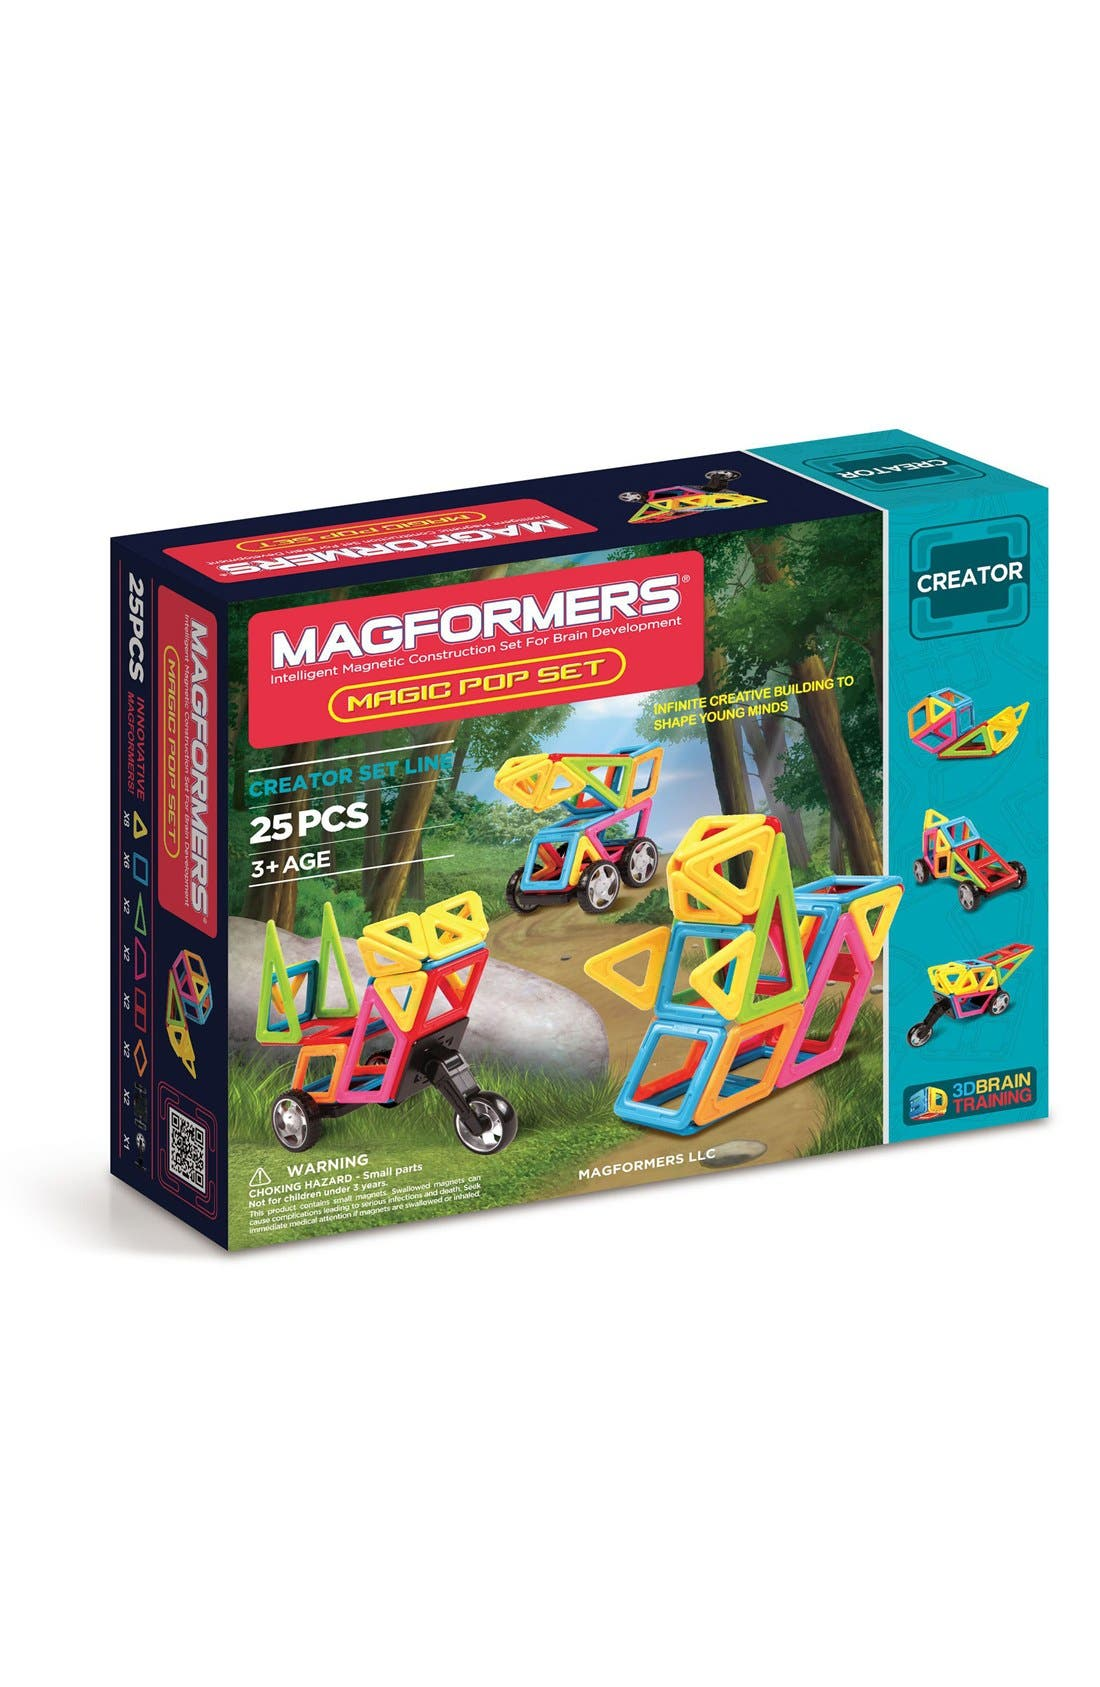 MAGFORMERS 'Creator - Magic Pop' Magnetic 3D Construction